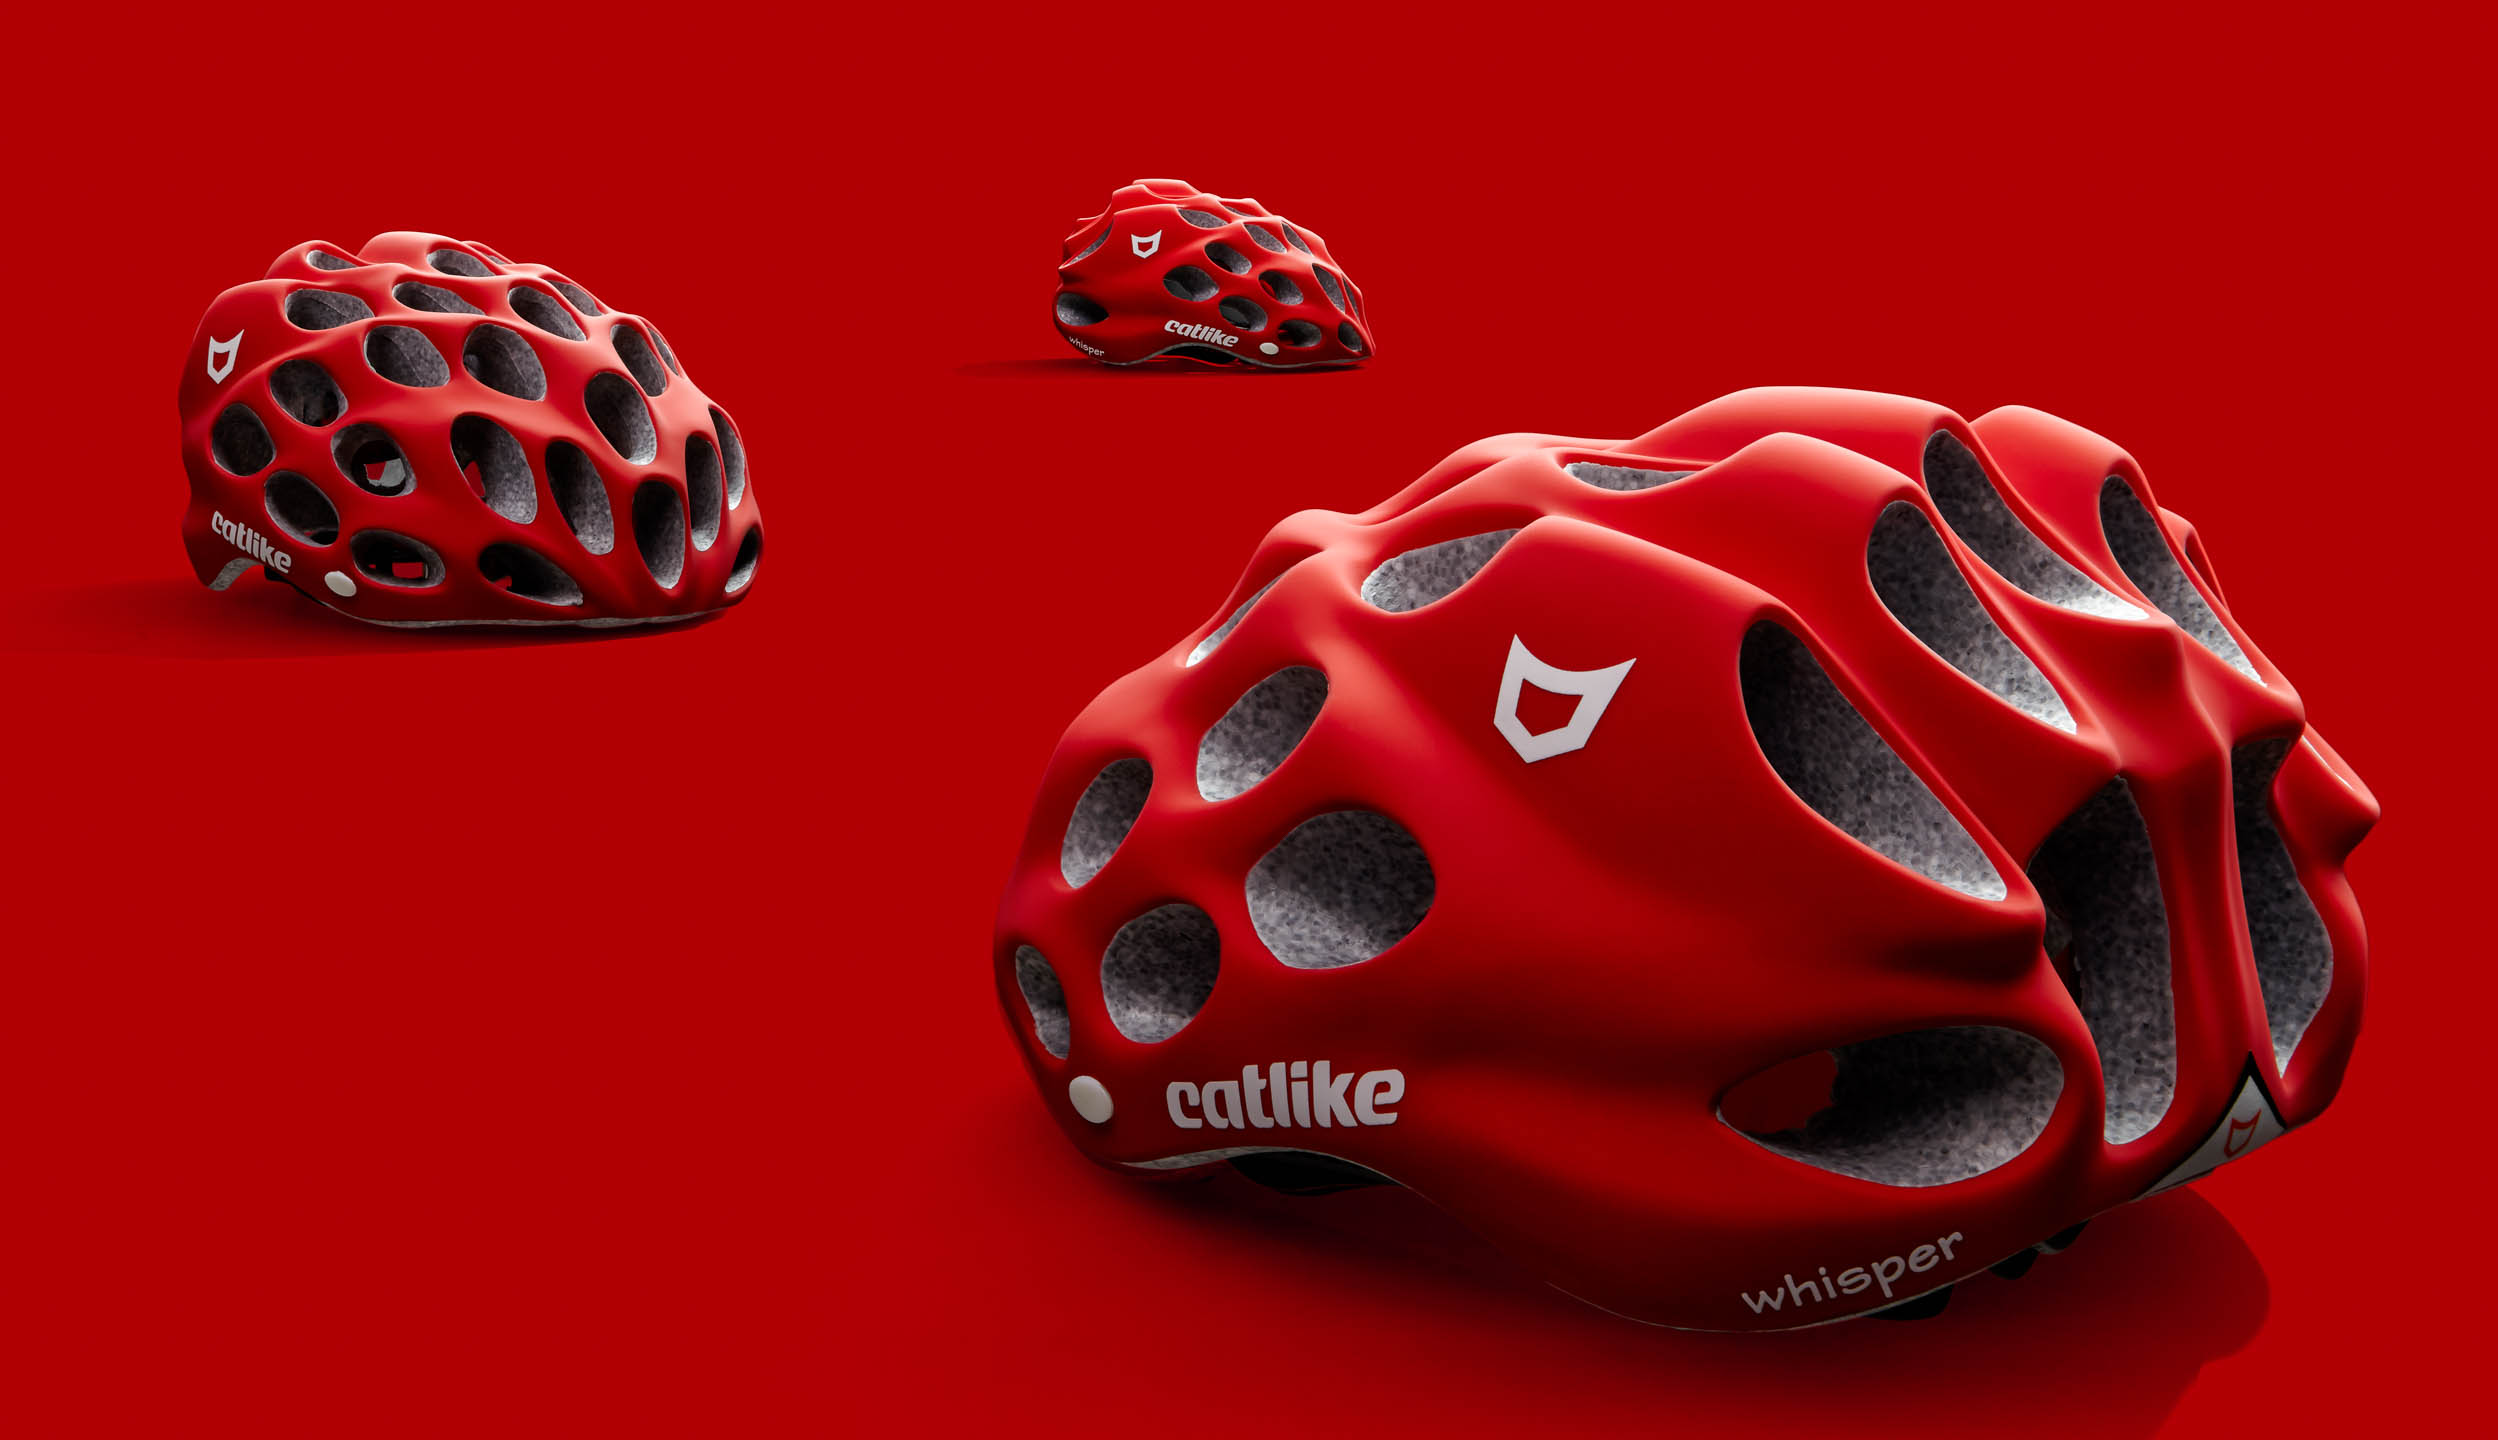 Catlike Whisper bicycling helmet